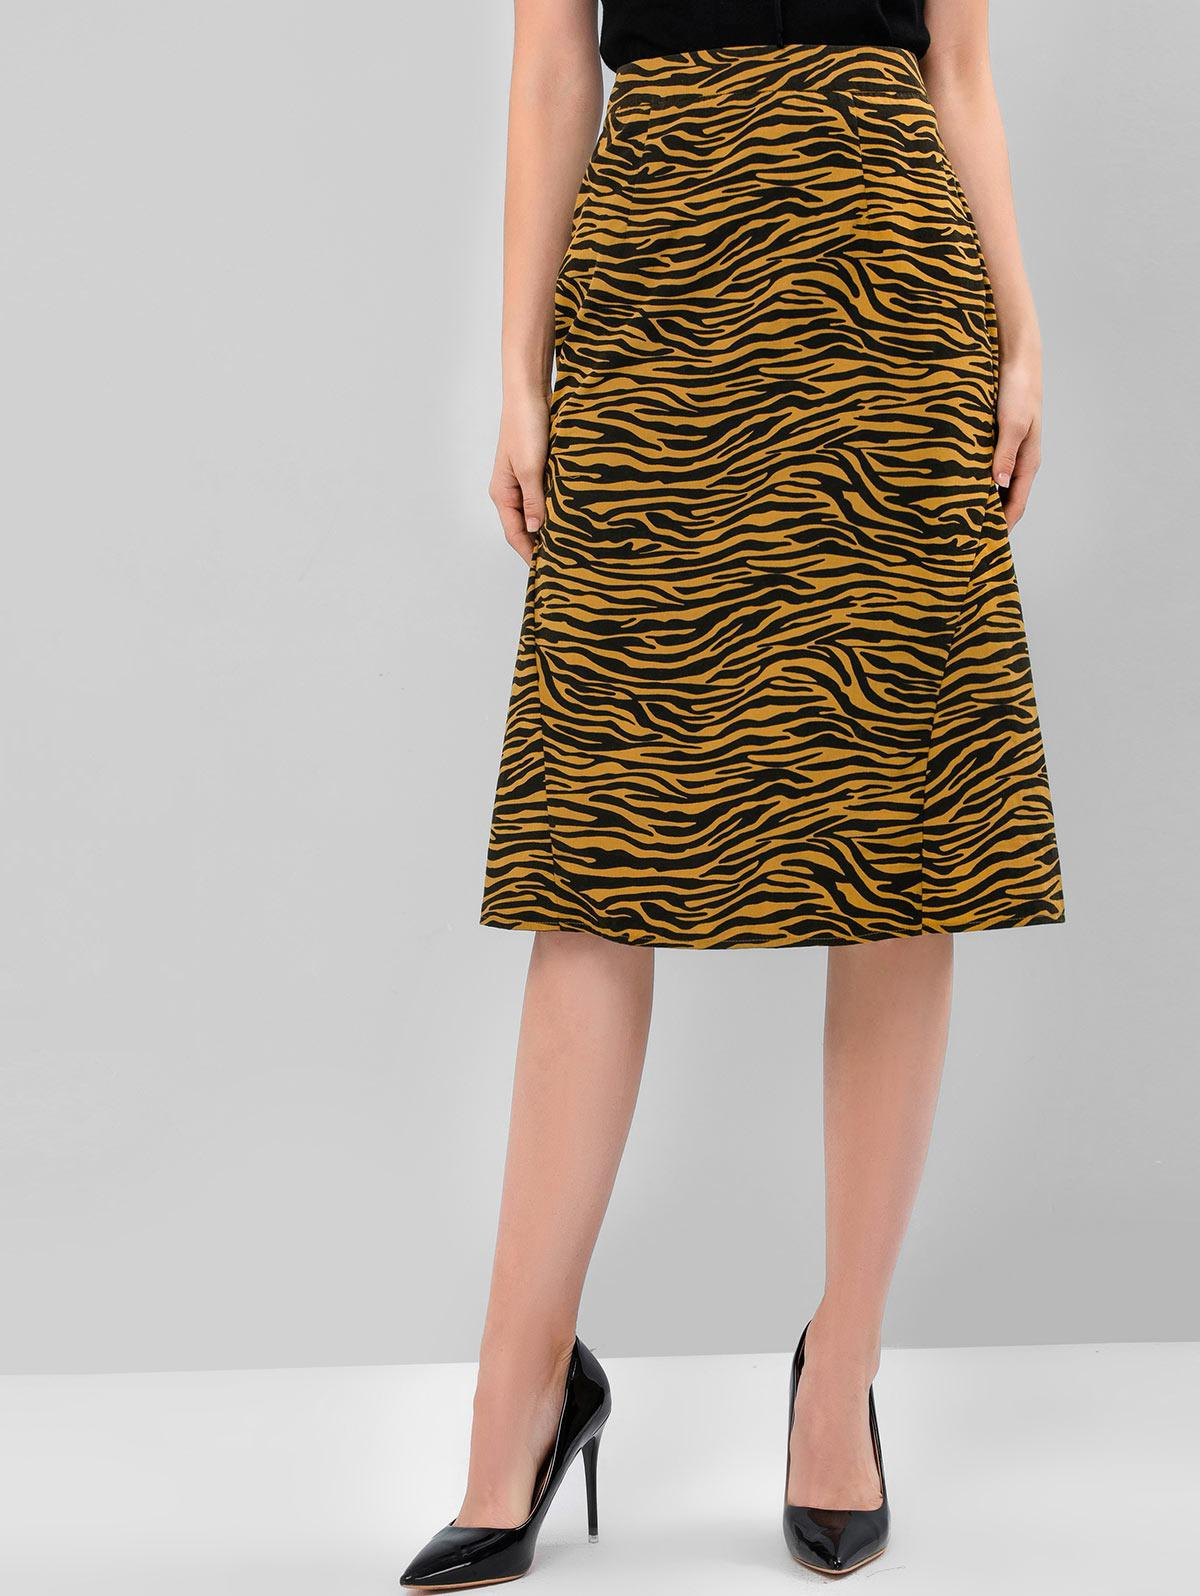 ZAFUL Tiger Print Zipper A Line Skirt